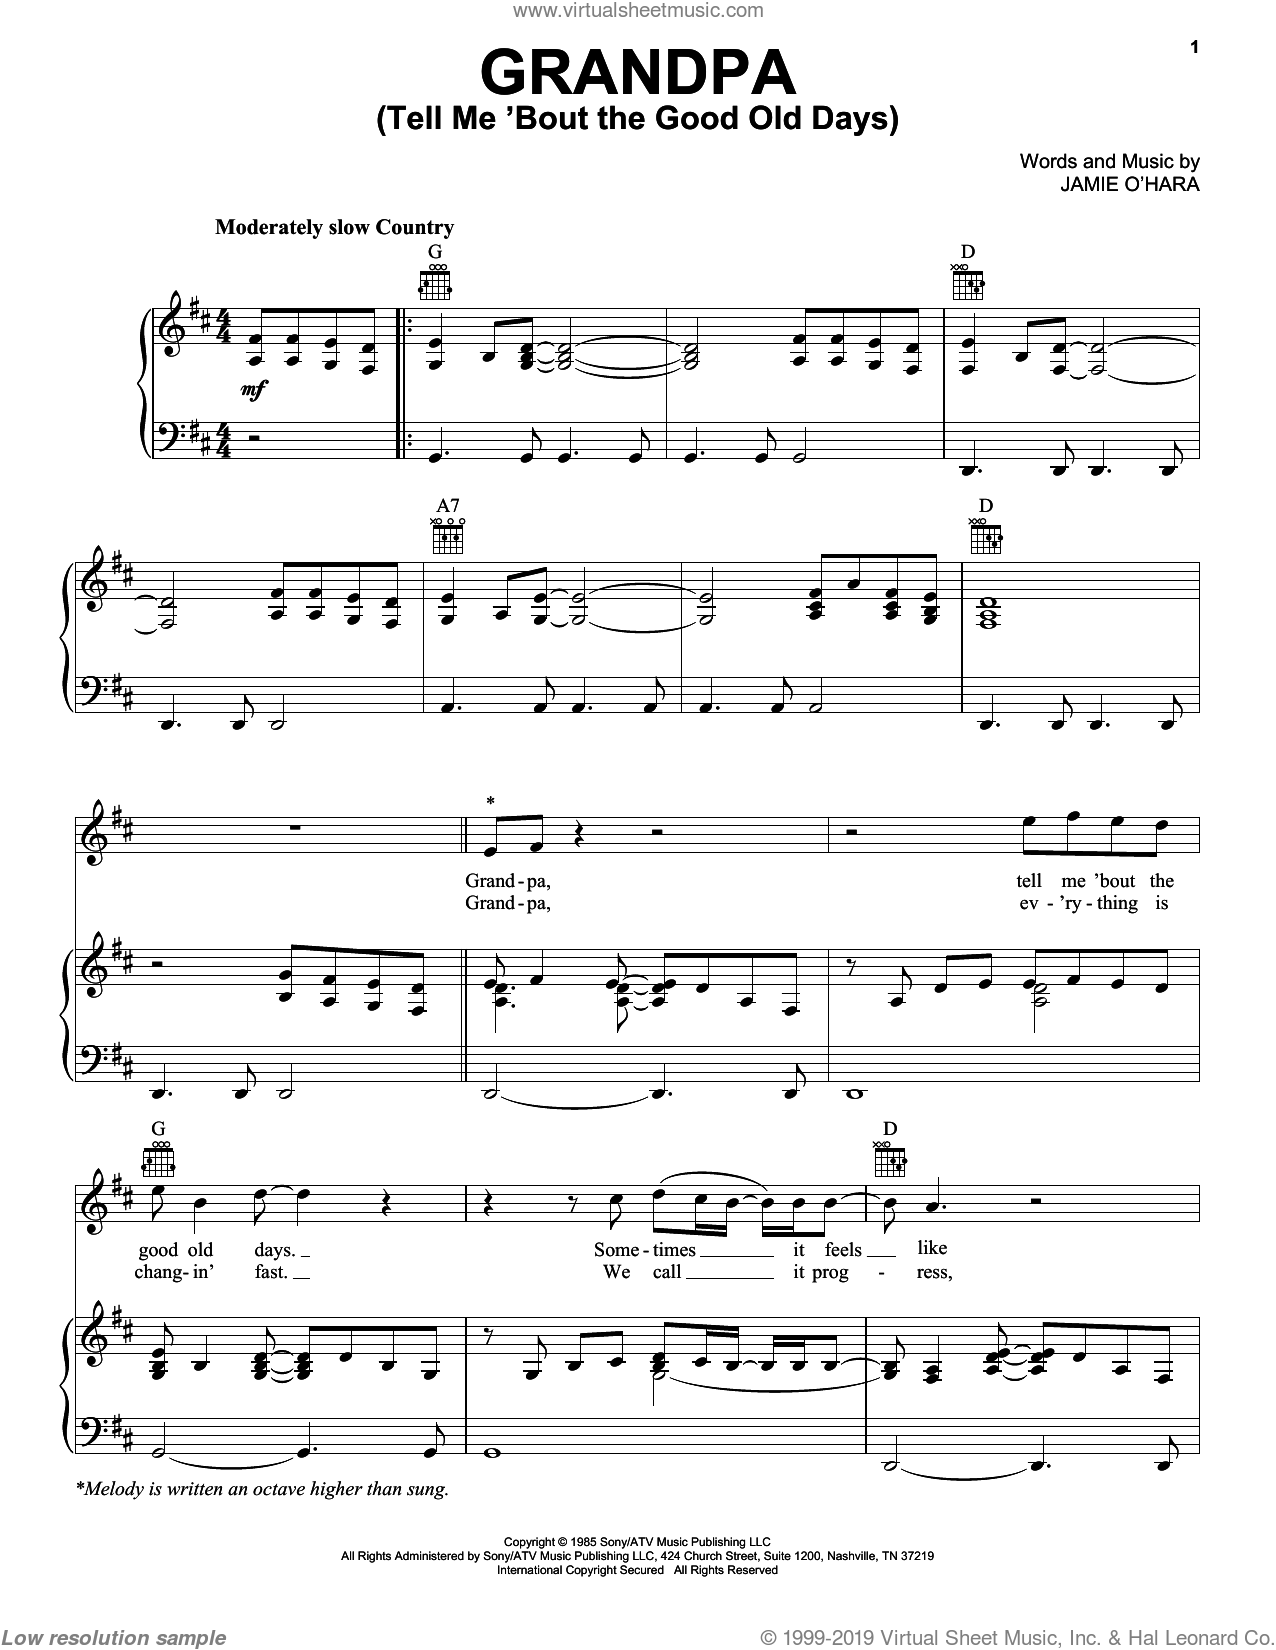 Grandpa (Tell Me 'Bout The Good Old Days) sheet music for voice, piano or guitar by Jamie O'Hara